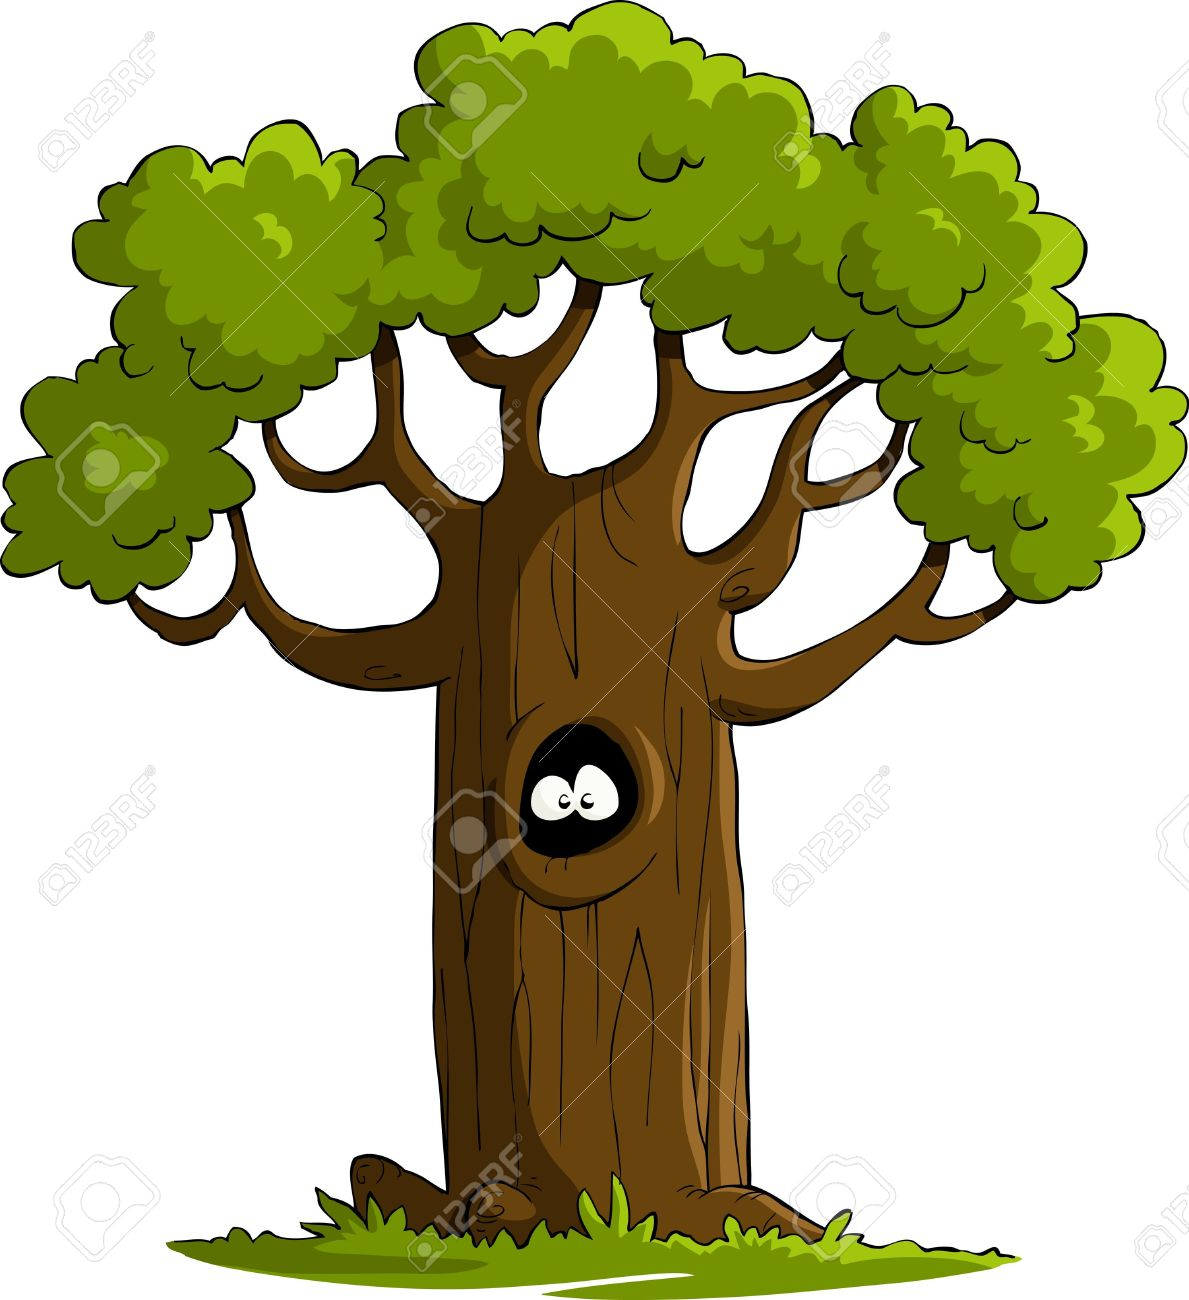 Hollow tree clipart free.